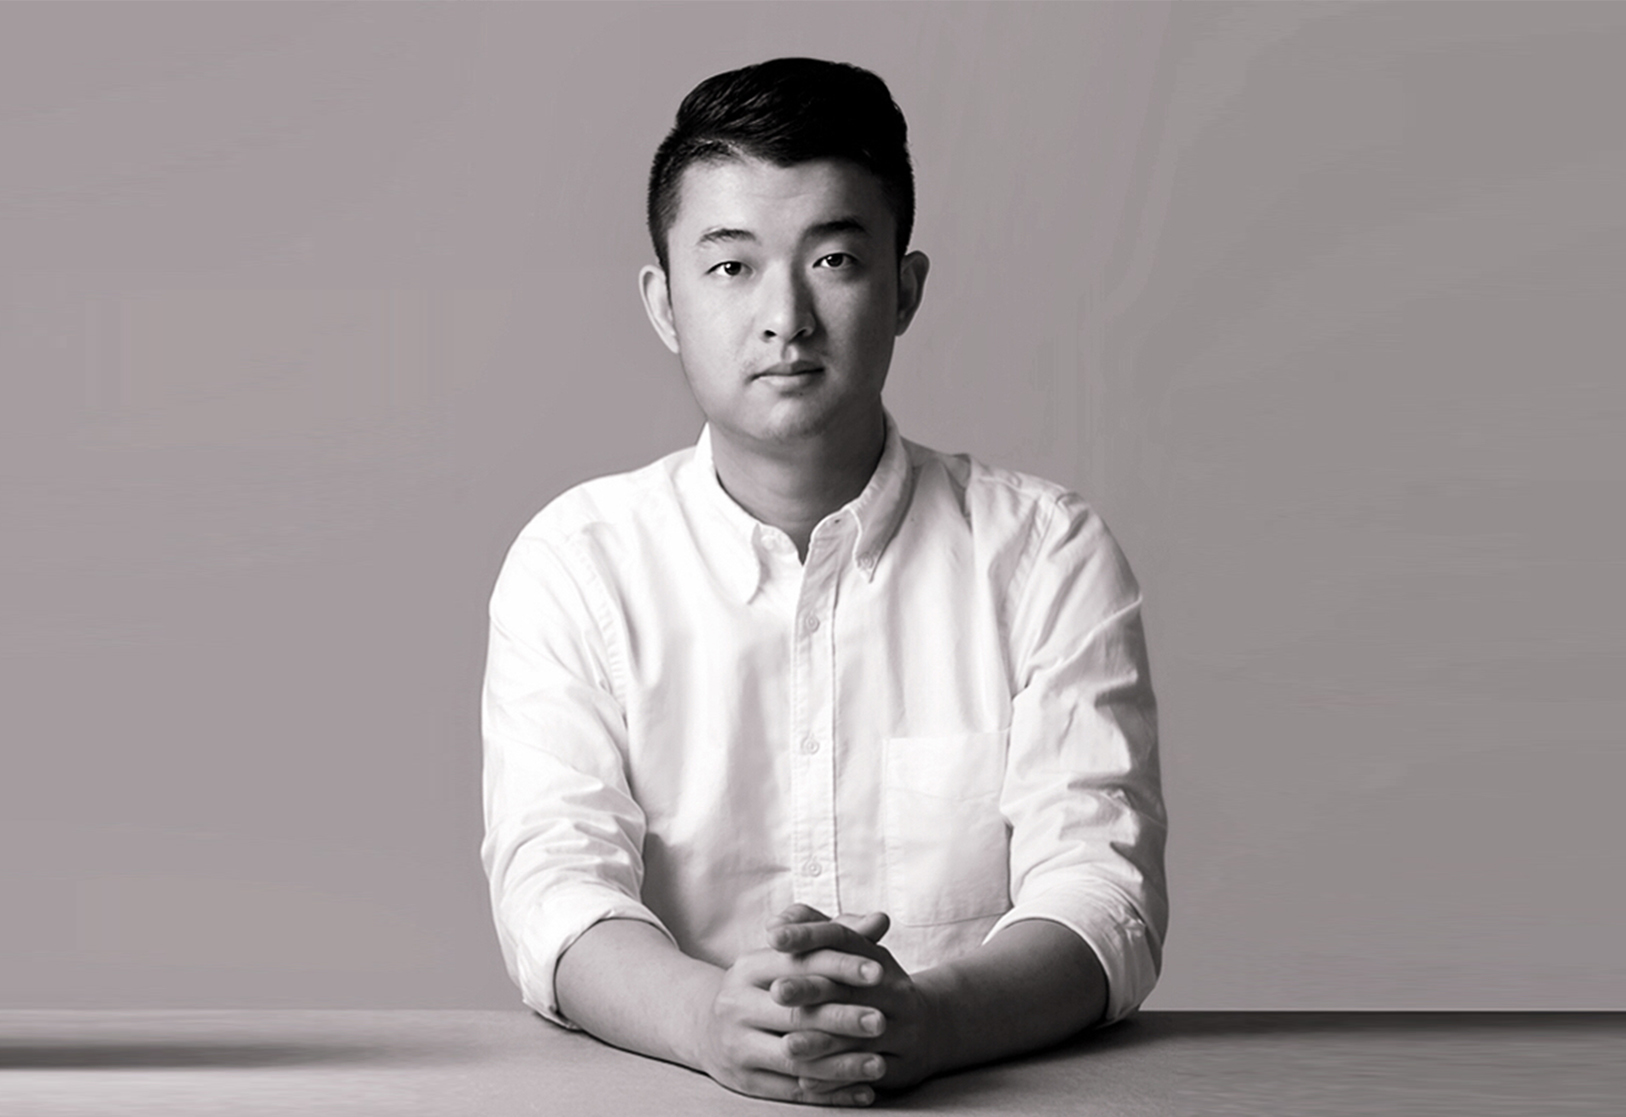 The 2018 Platinum winner interview - Deng Xiong Bo